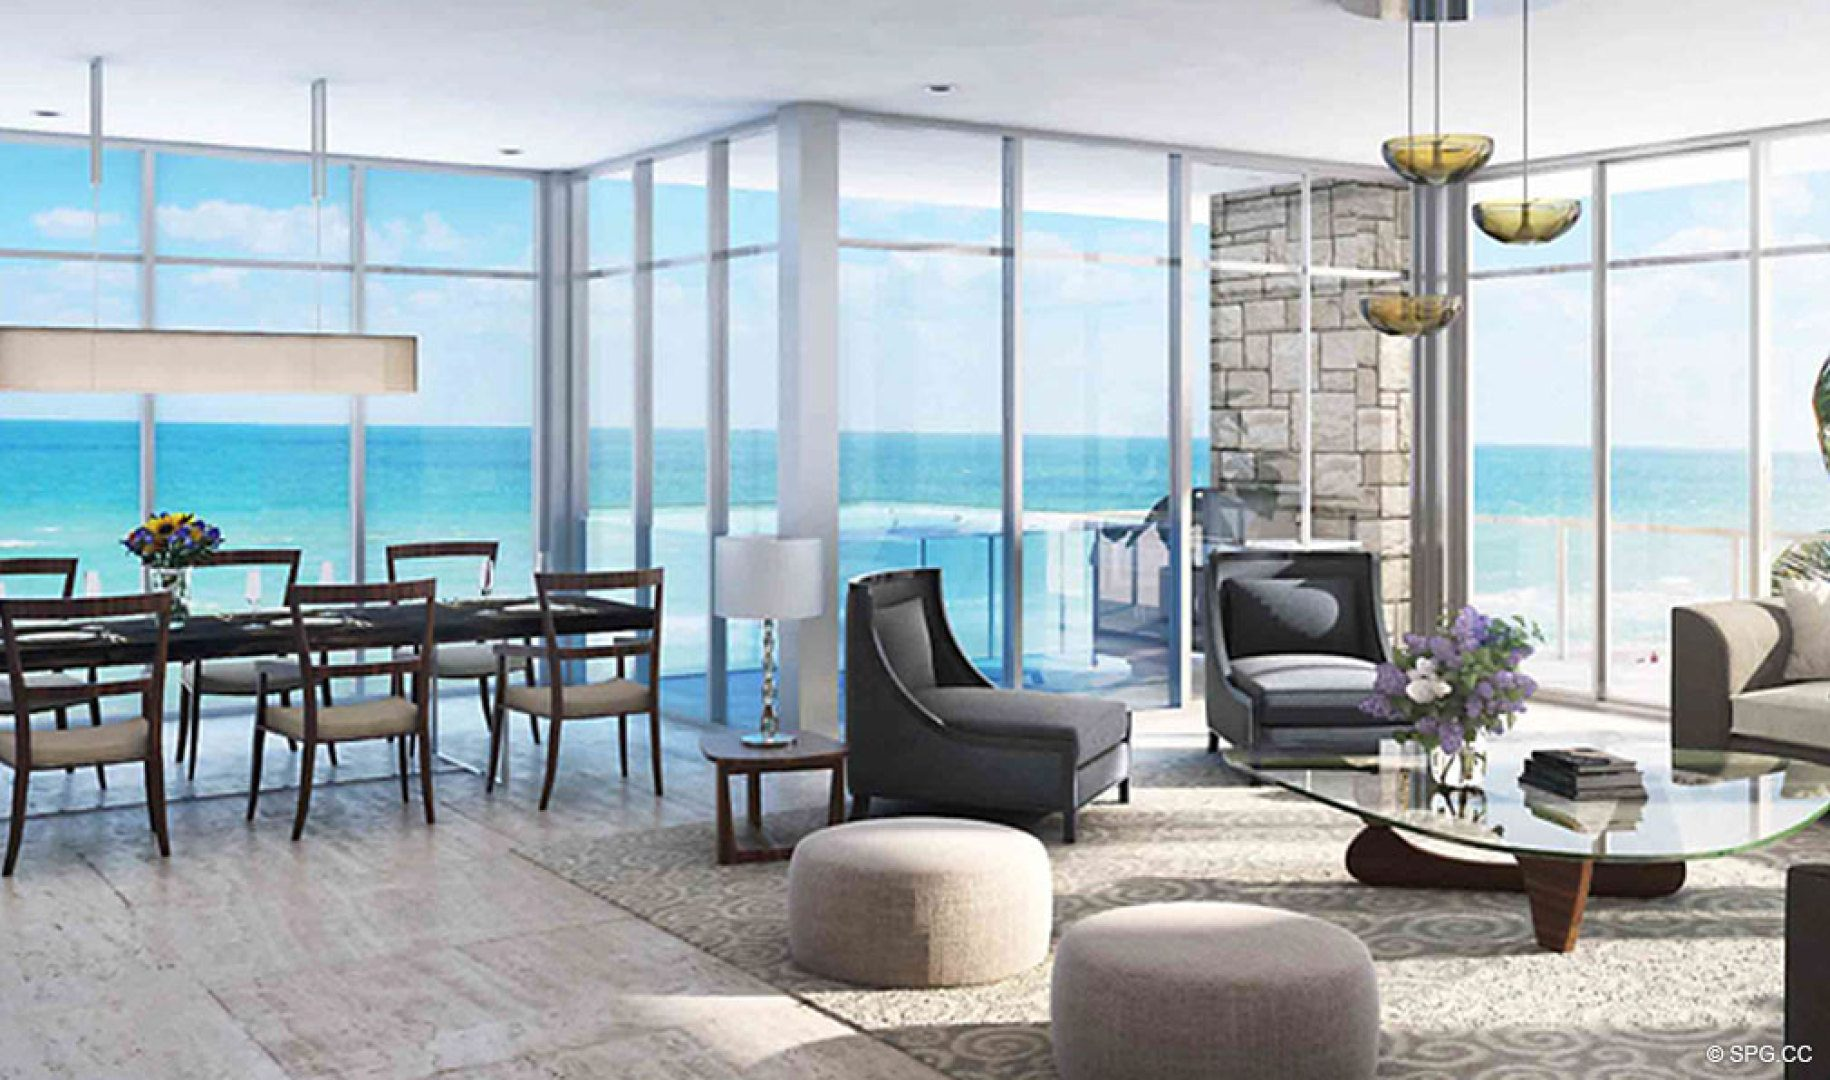 Spacious Interiors with Floor to Ceiling Glass at Sage Beach, Luxury Oceanfront Condos in Hollywood Beach Florida 33019